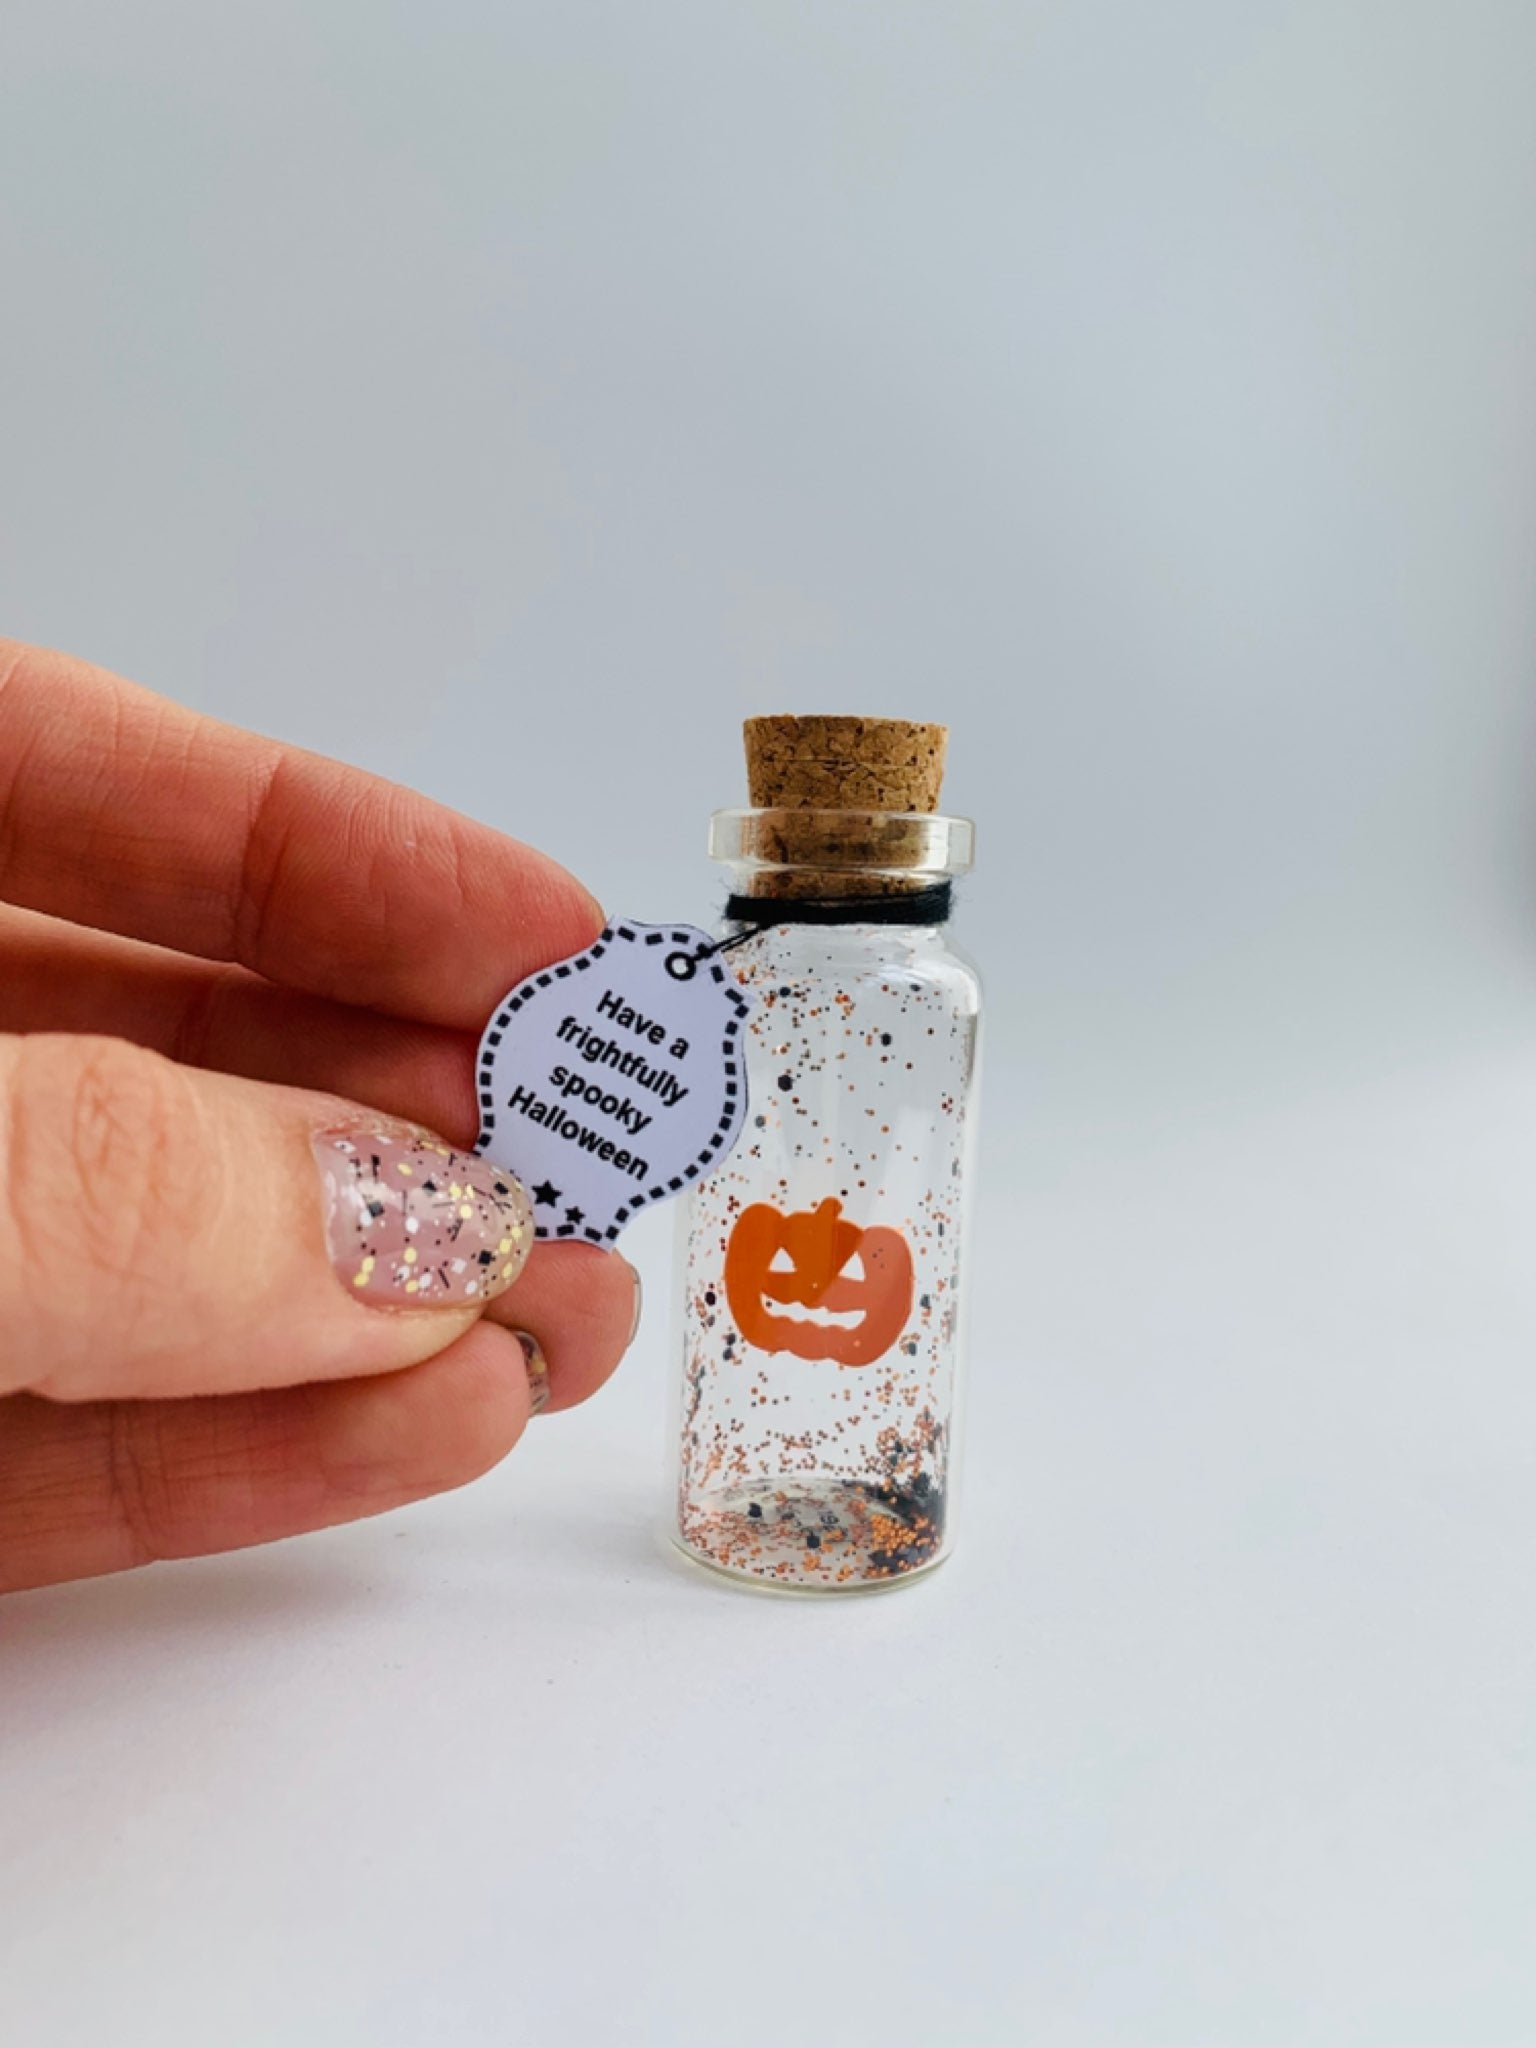 Have A Frightfully Spooky Halloween Personalize Gift - AwwBottles